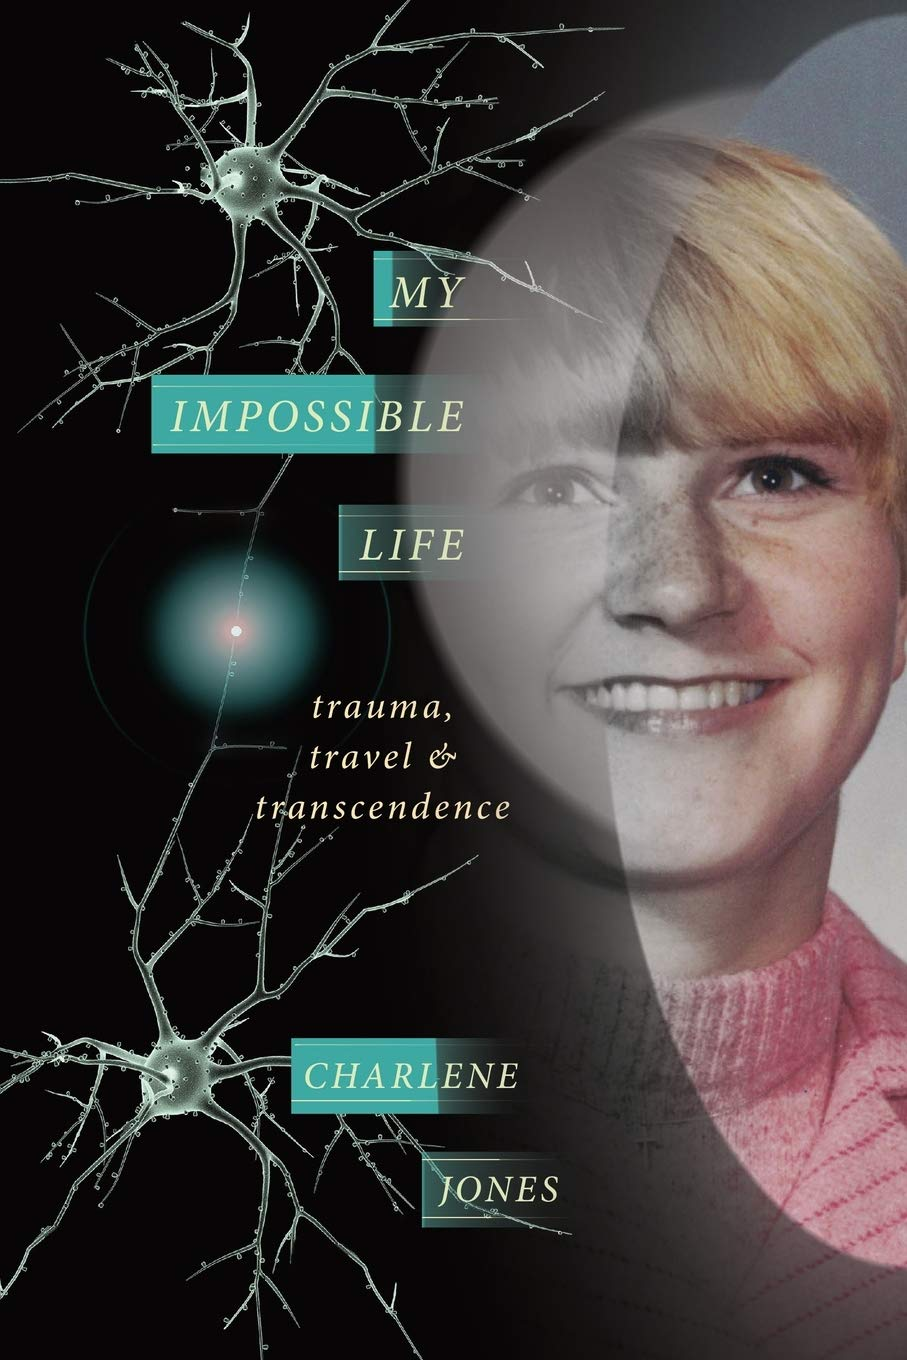 My Impossible Life: trauma travel transcendence: Jones, Charlene D, Reynolds, Sue: 9781987813326: Amazon.com: Books